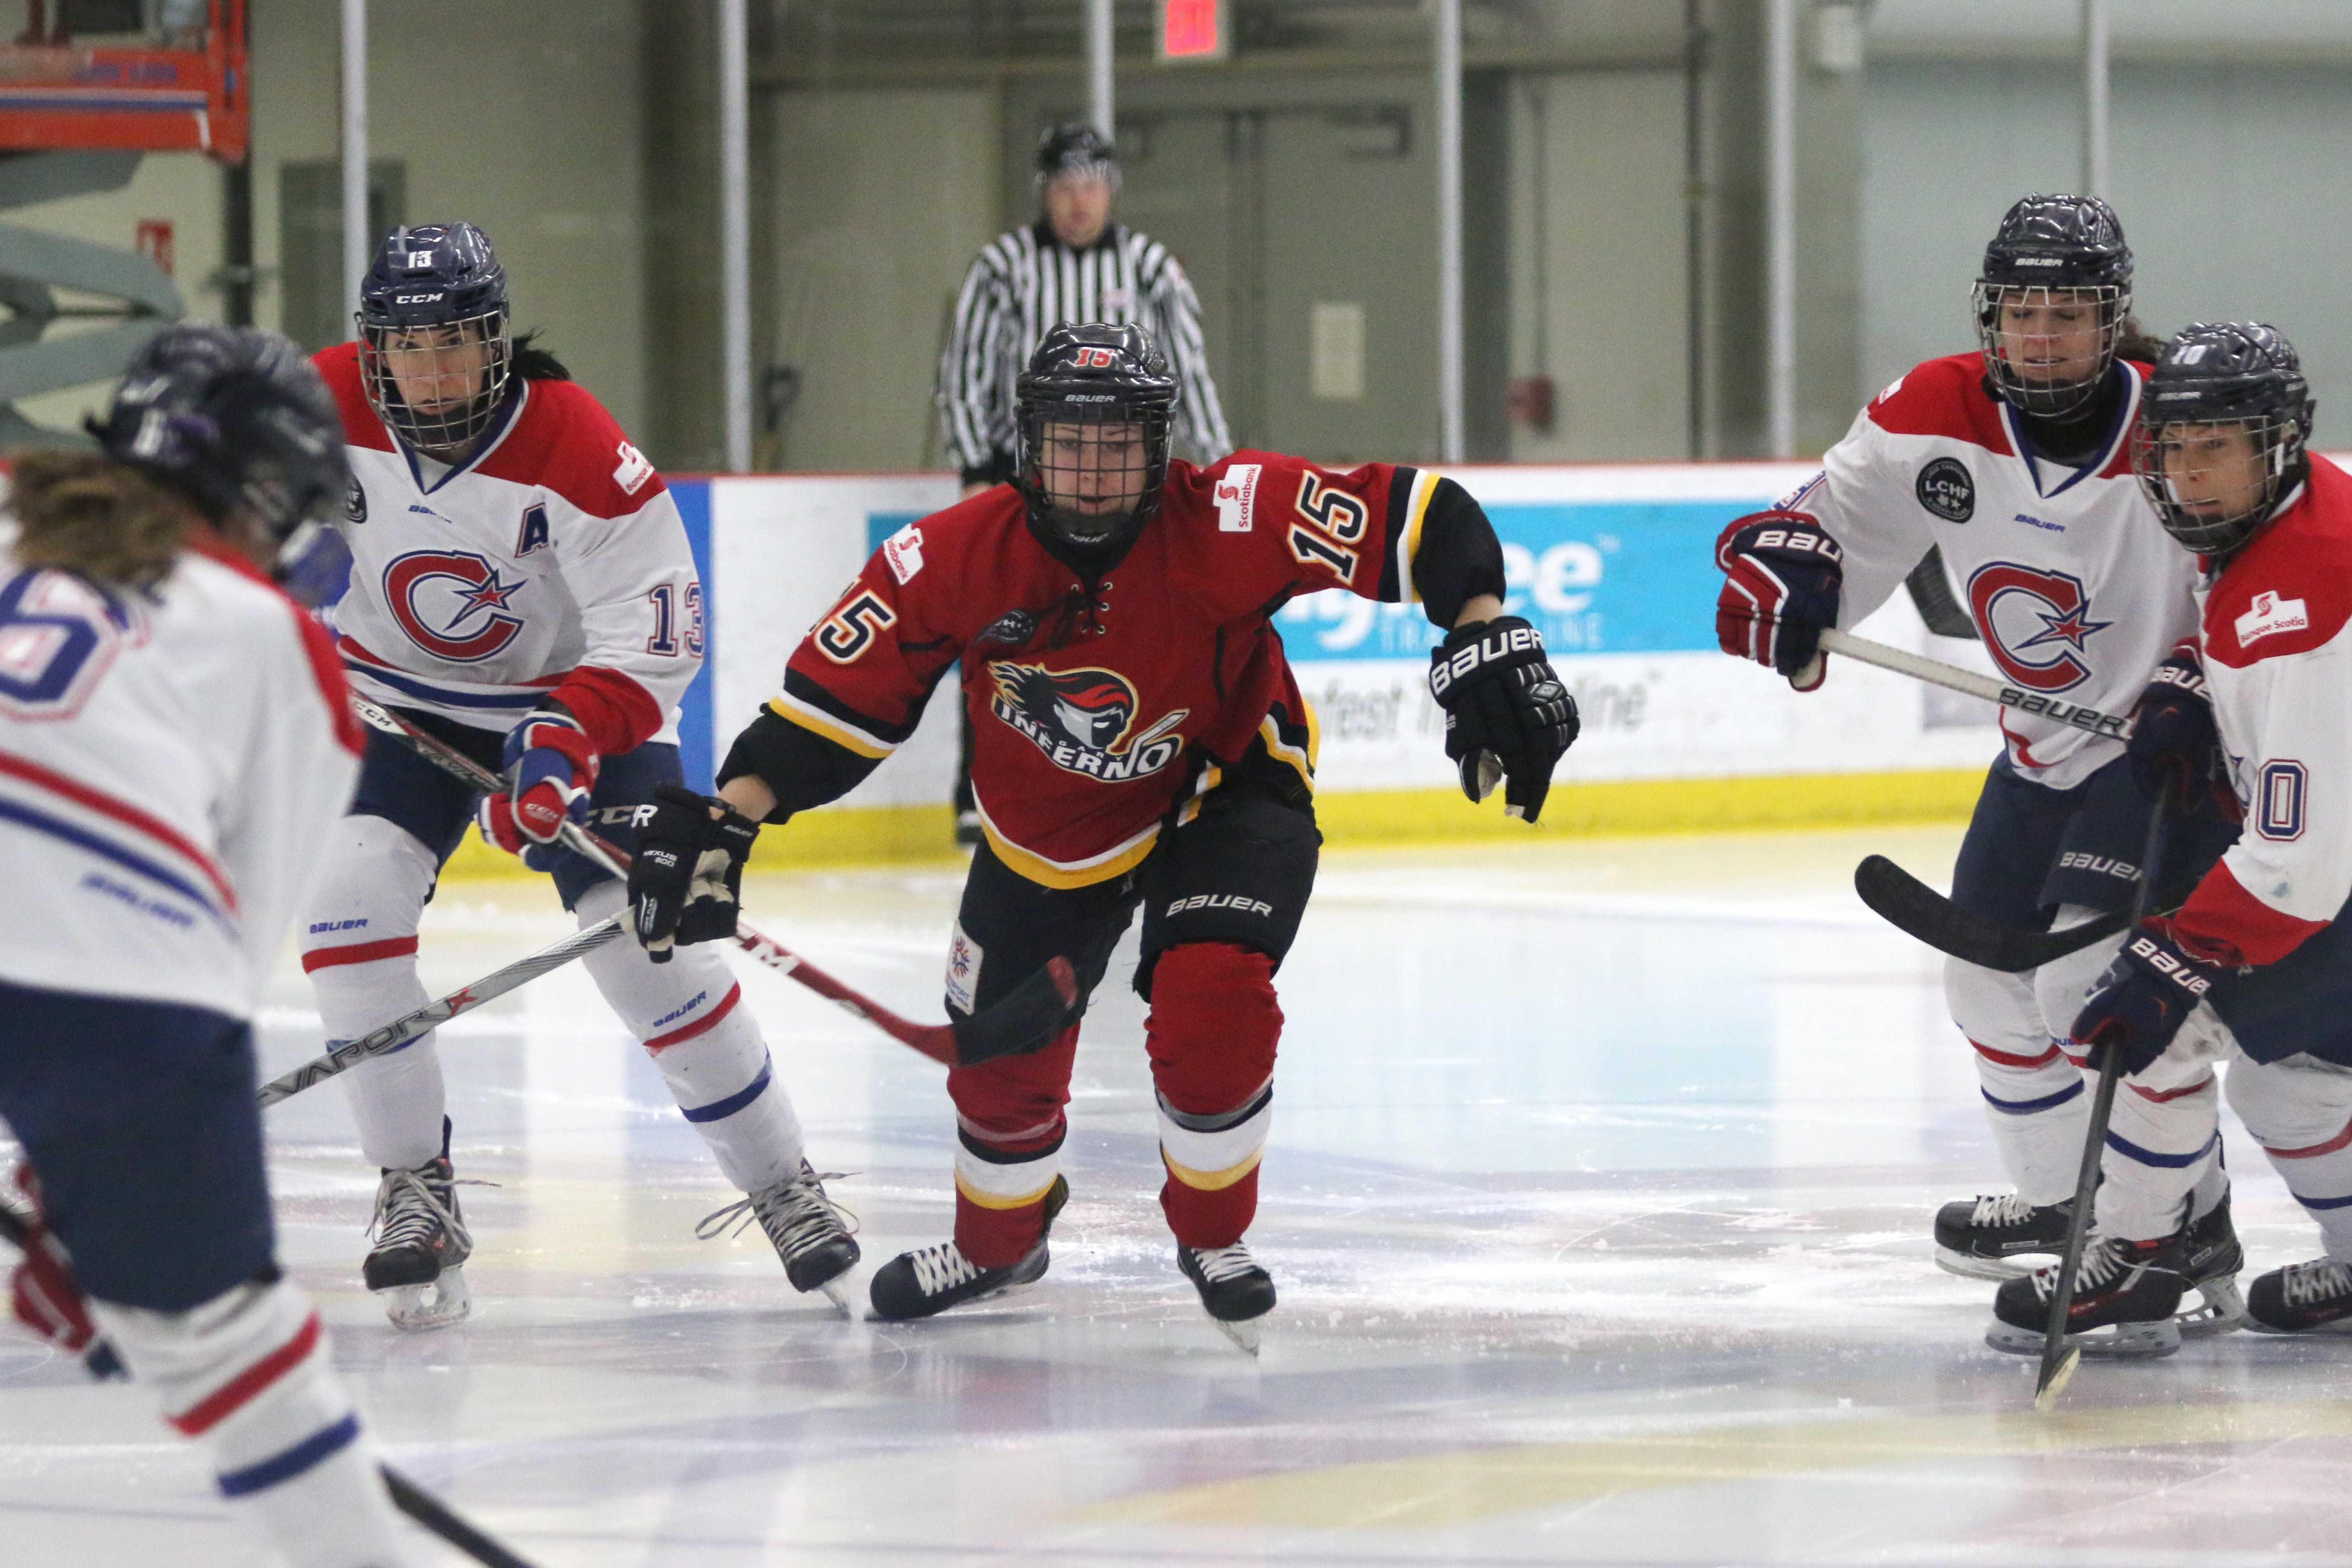 Elana Lovell (center) is up for Rookie of the Year after being a point-per-game player in the regular season for the Inferno.